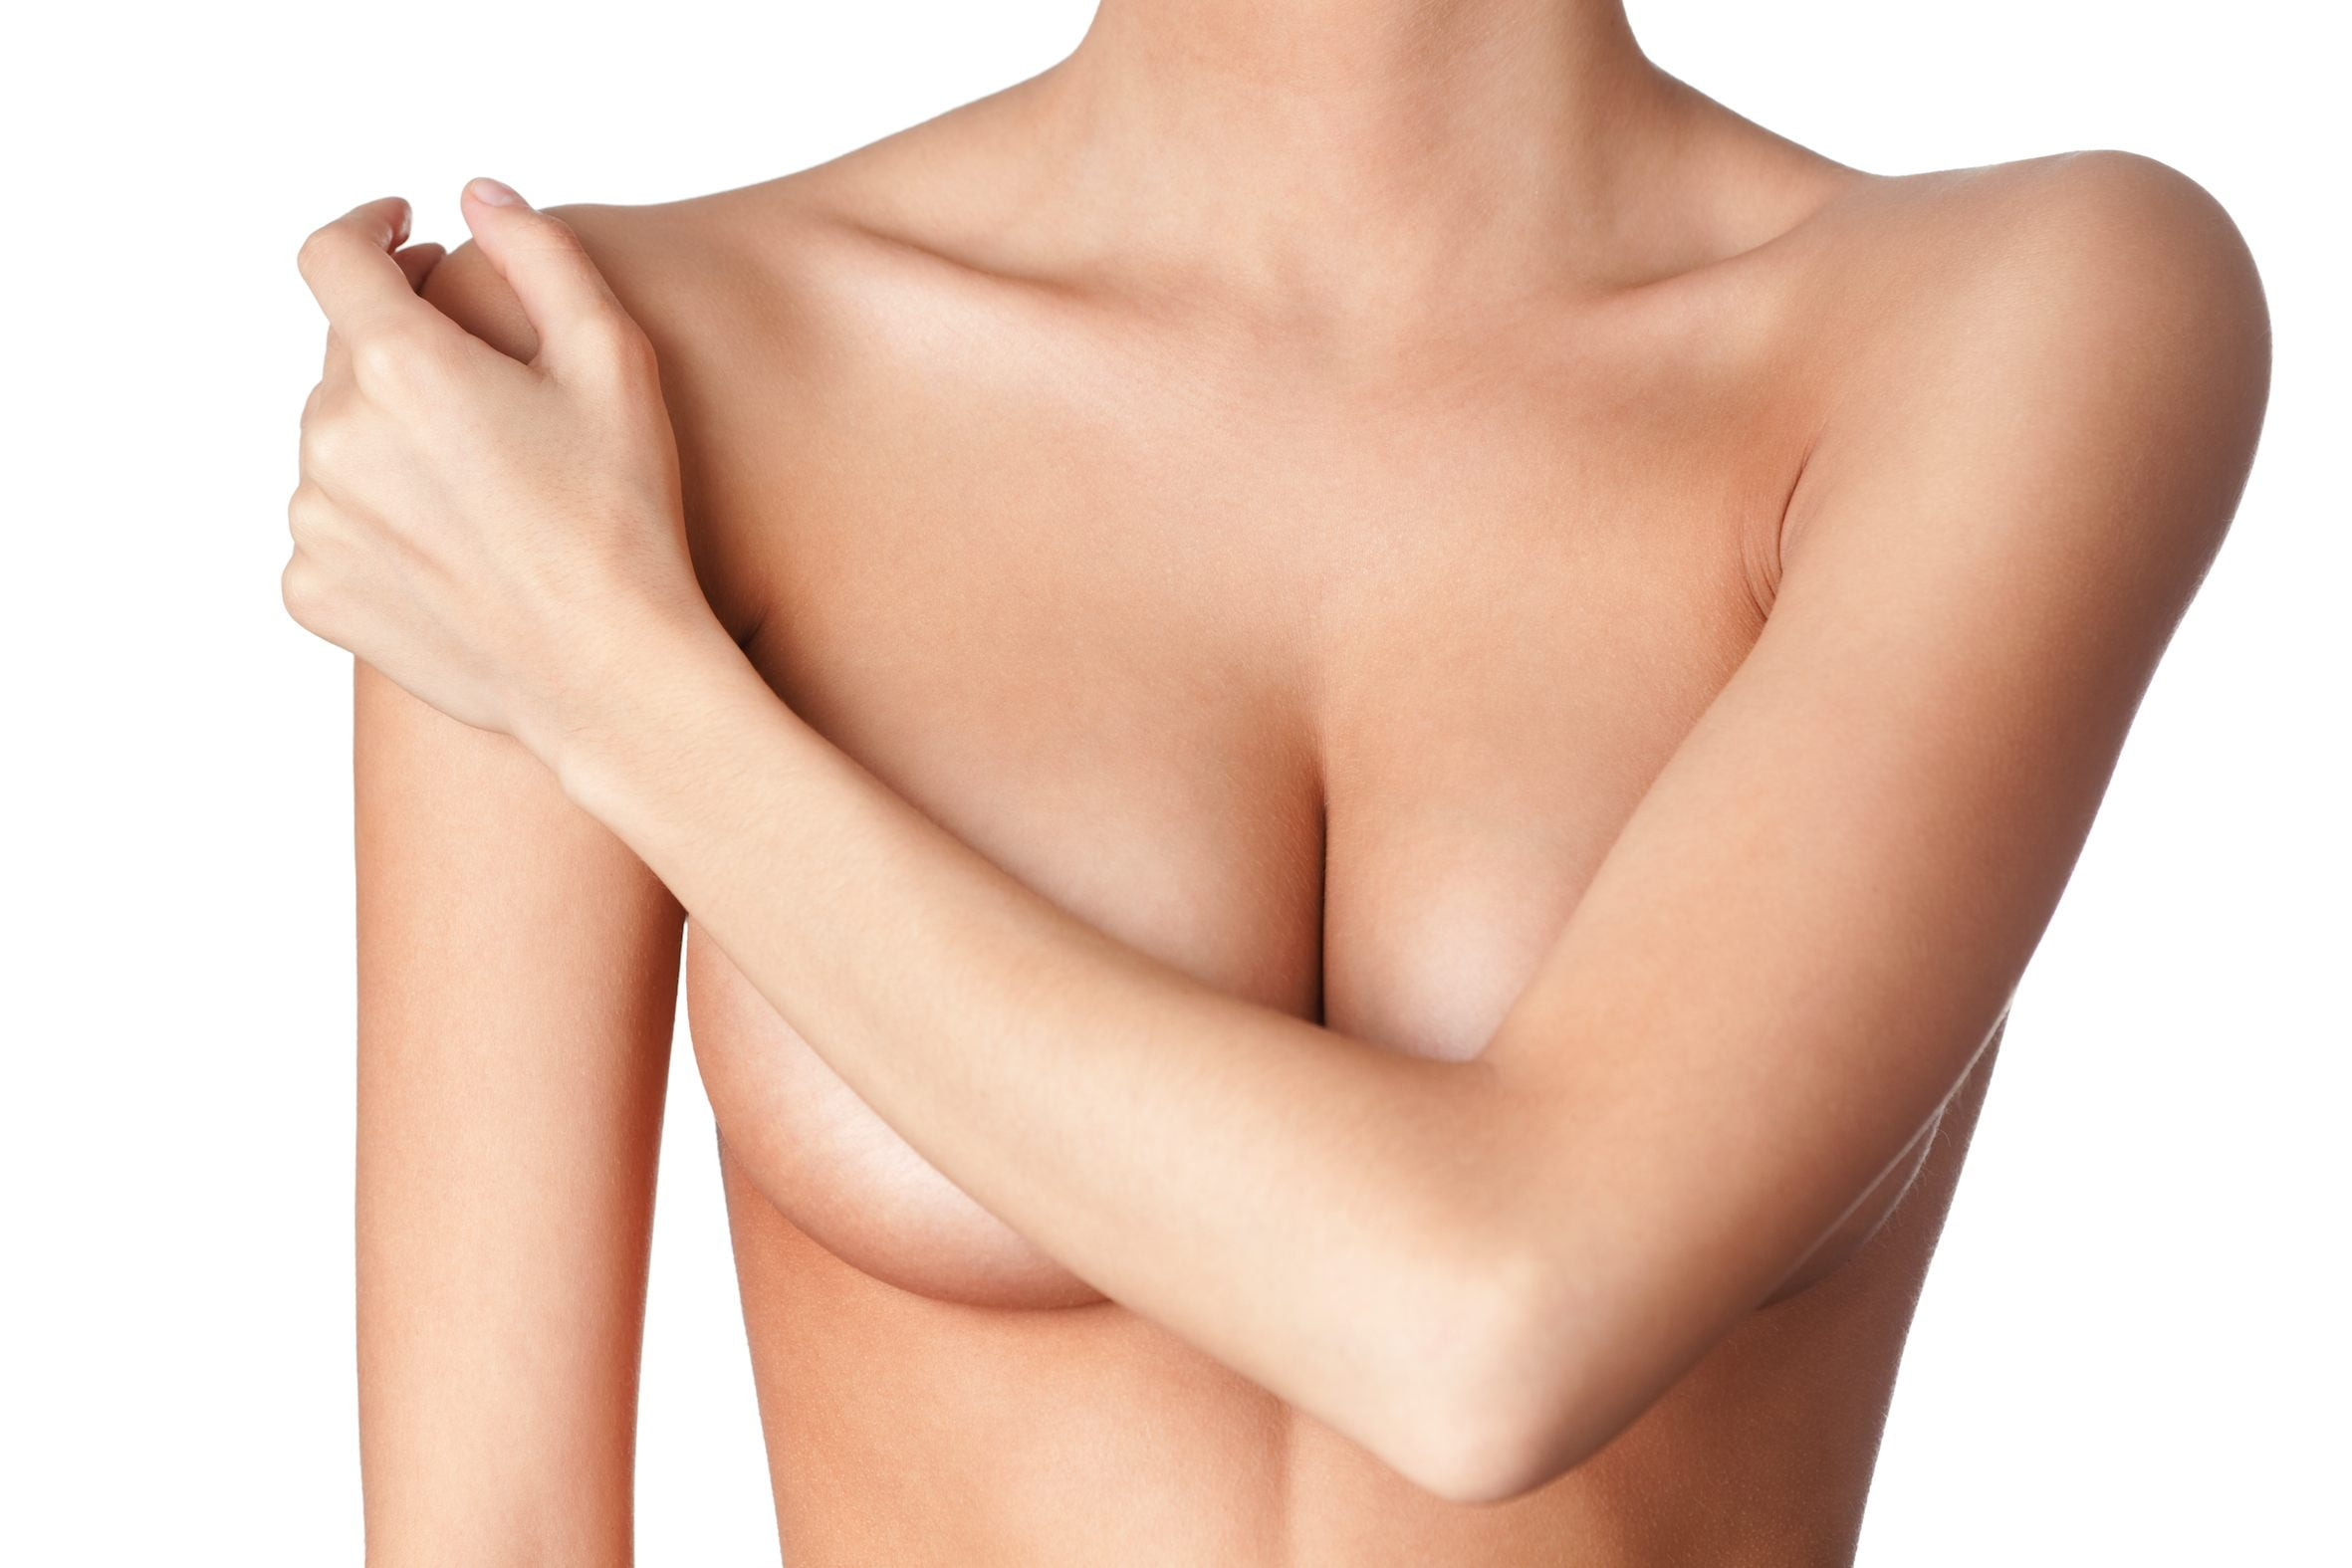 Information about ALCL breast implant